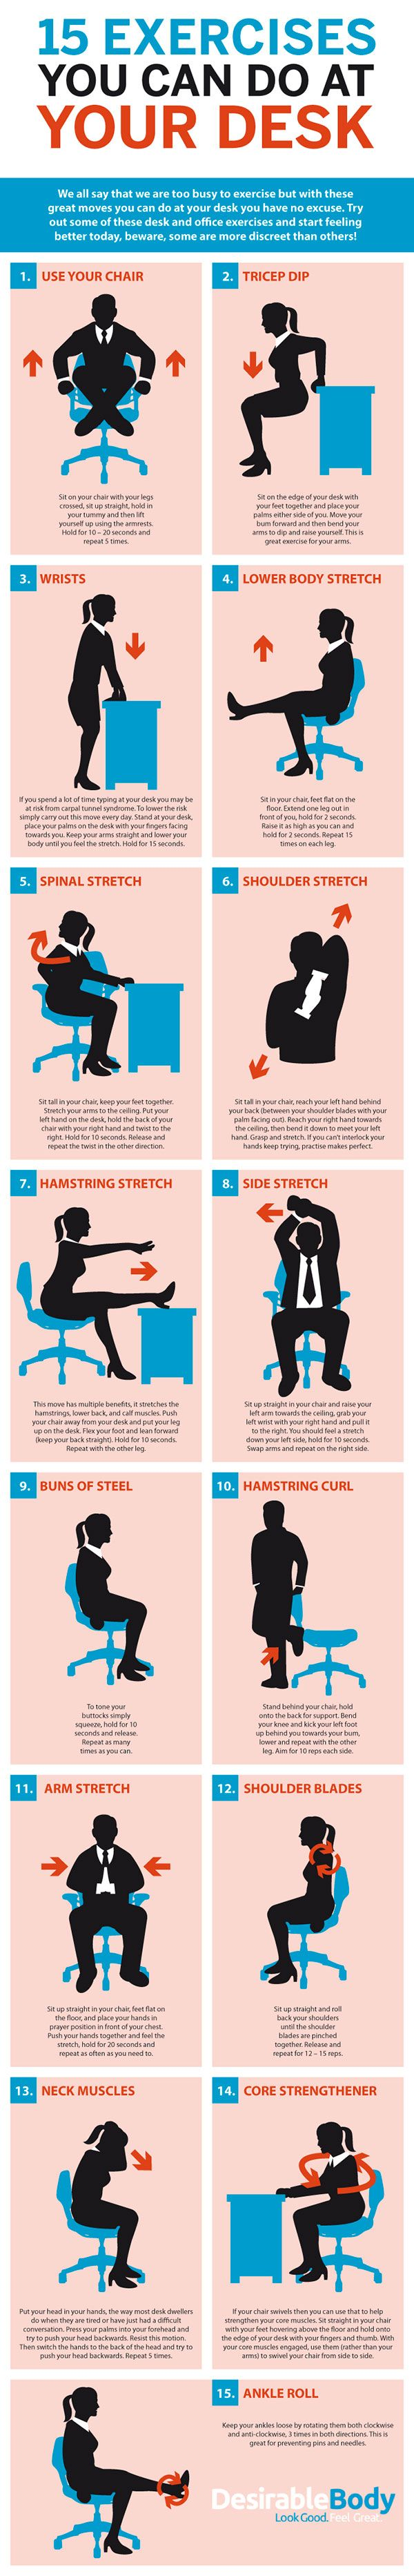 How To Squeeze In More Exercise No Matter How Long You're Stuck At Your Desk